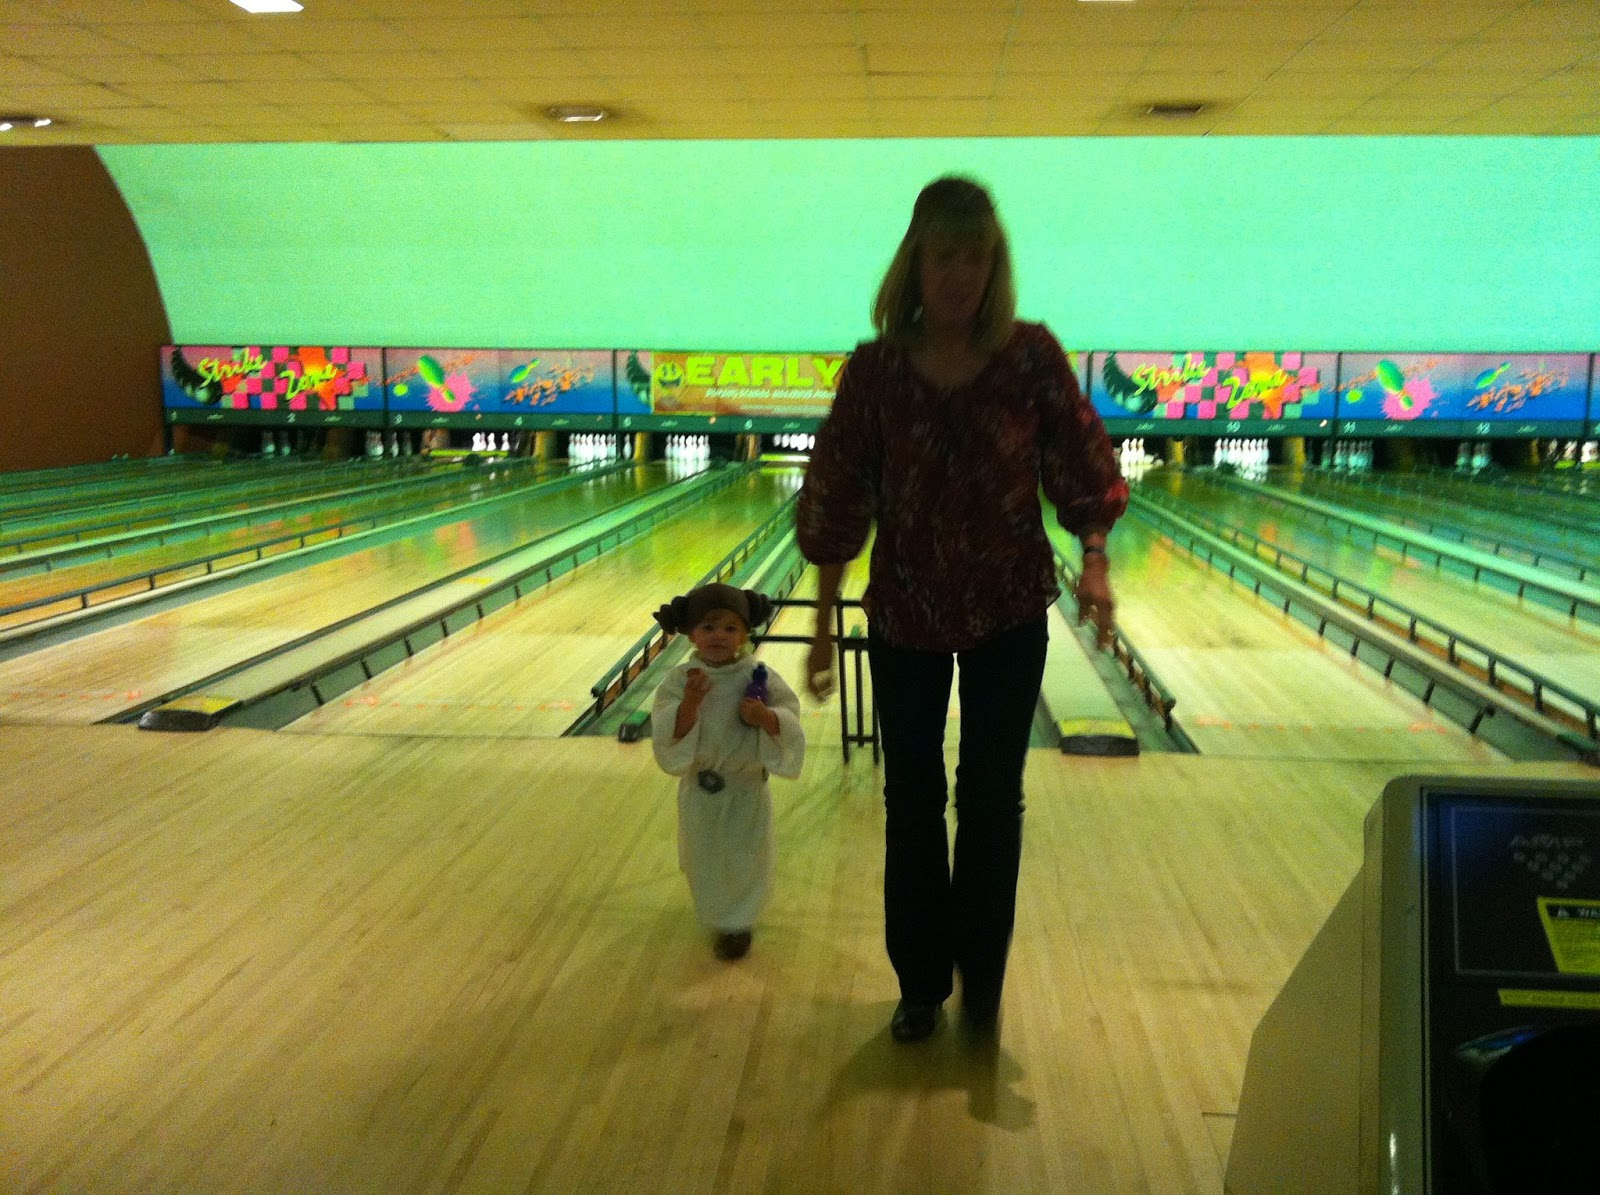 5 ways to feed your family's Star Wars obsession - bowling in a Princess Leia costume